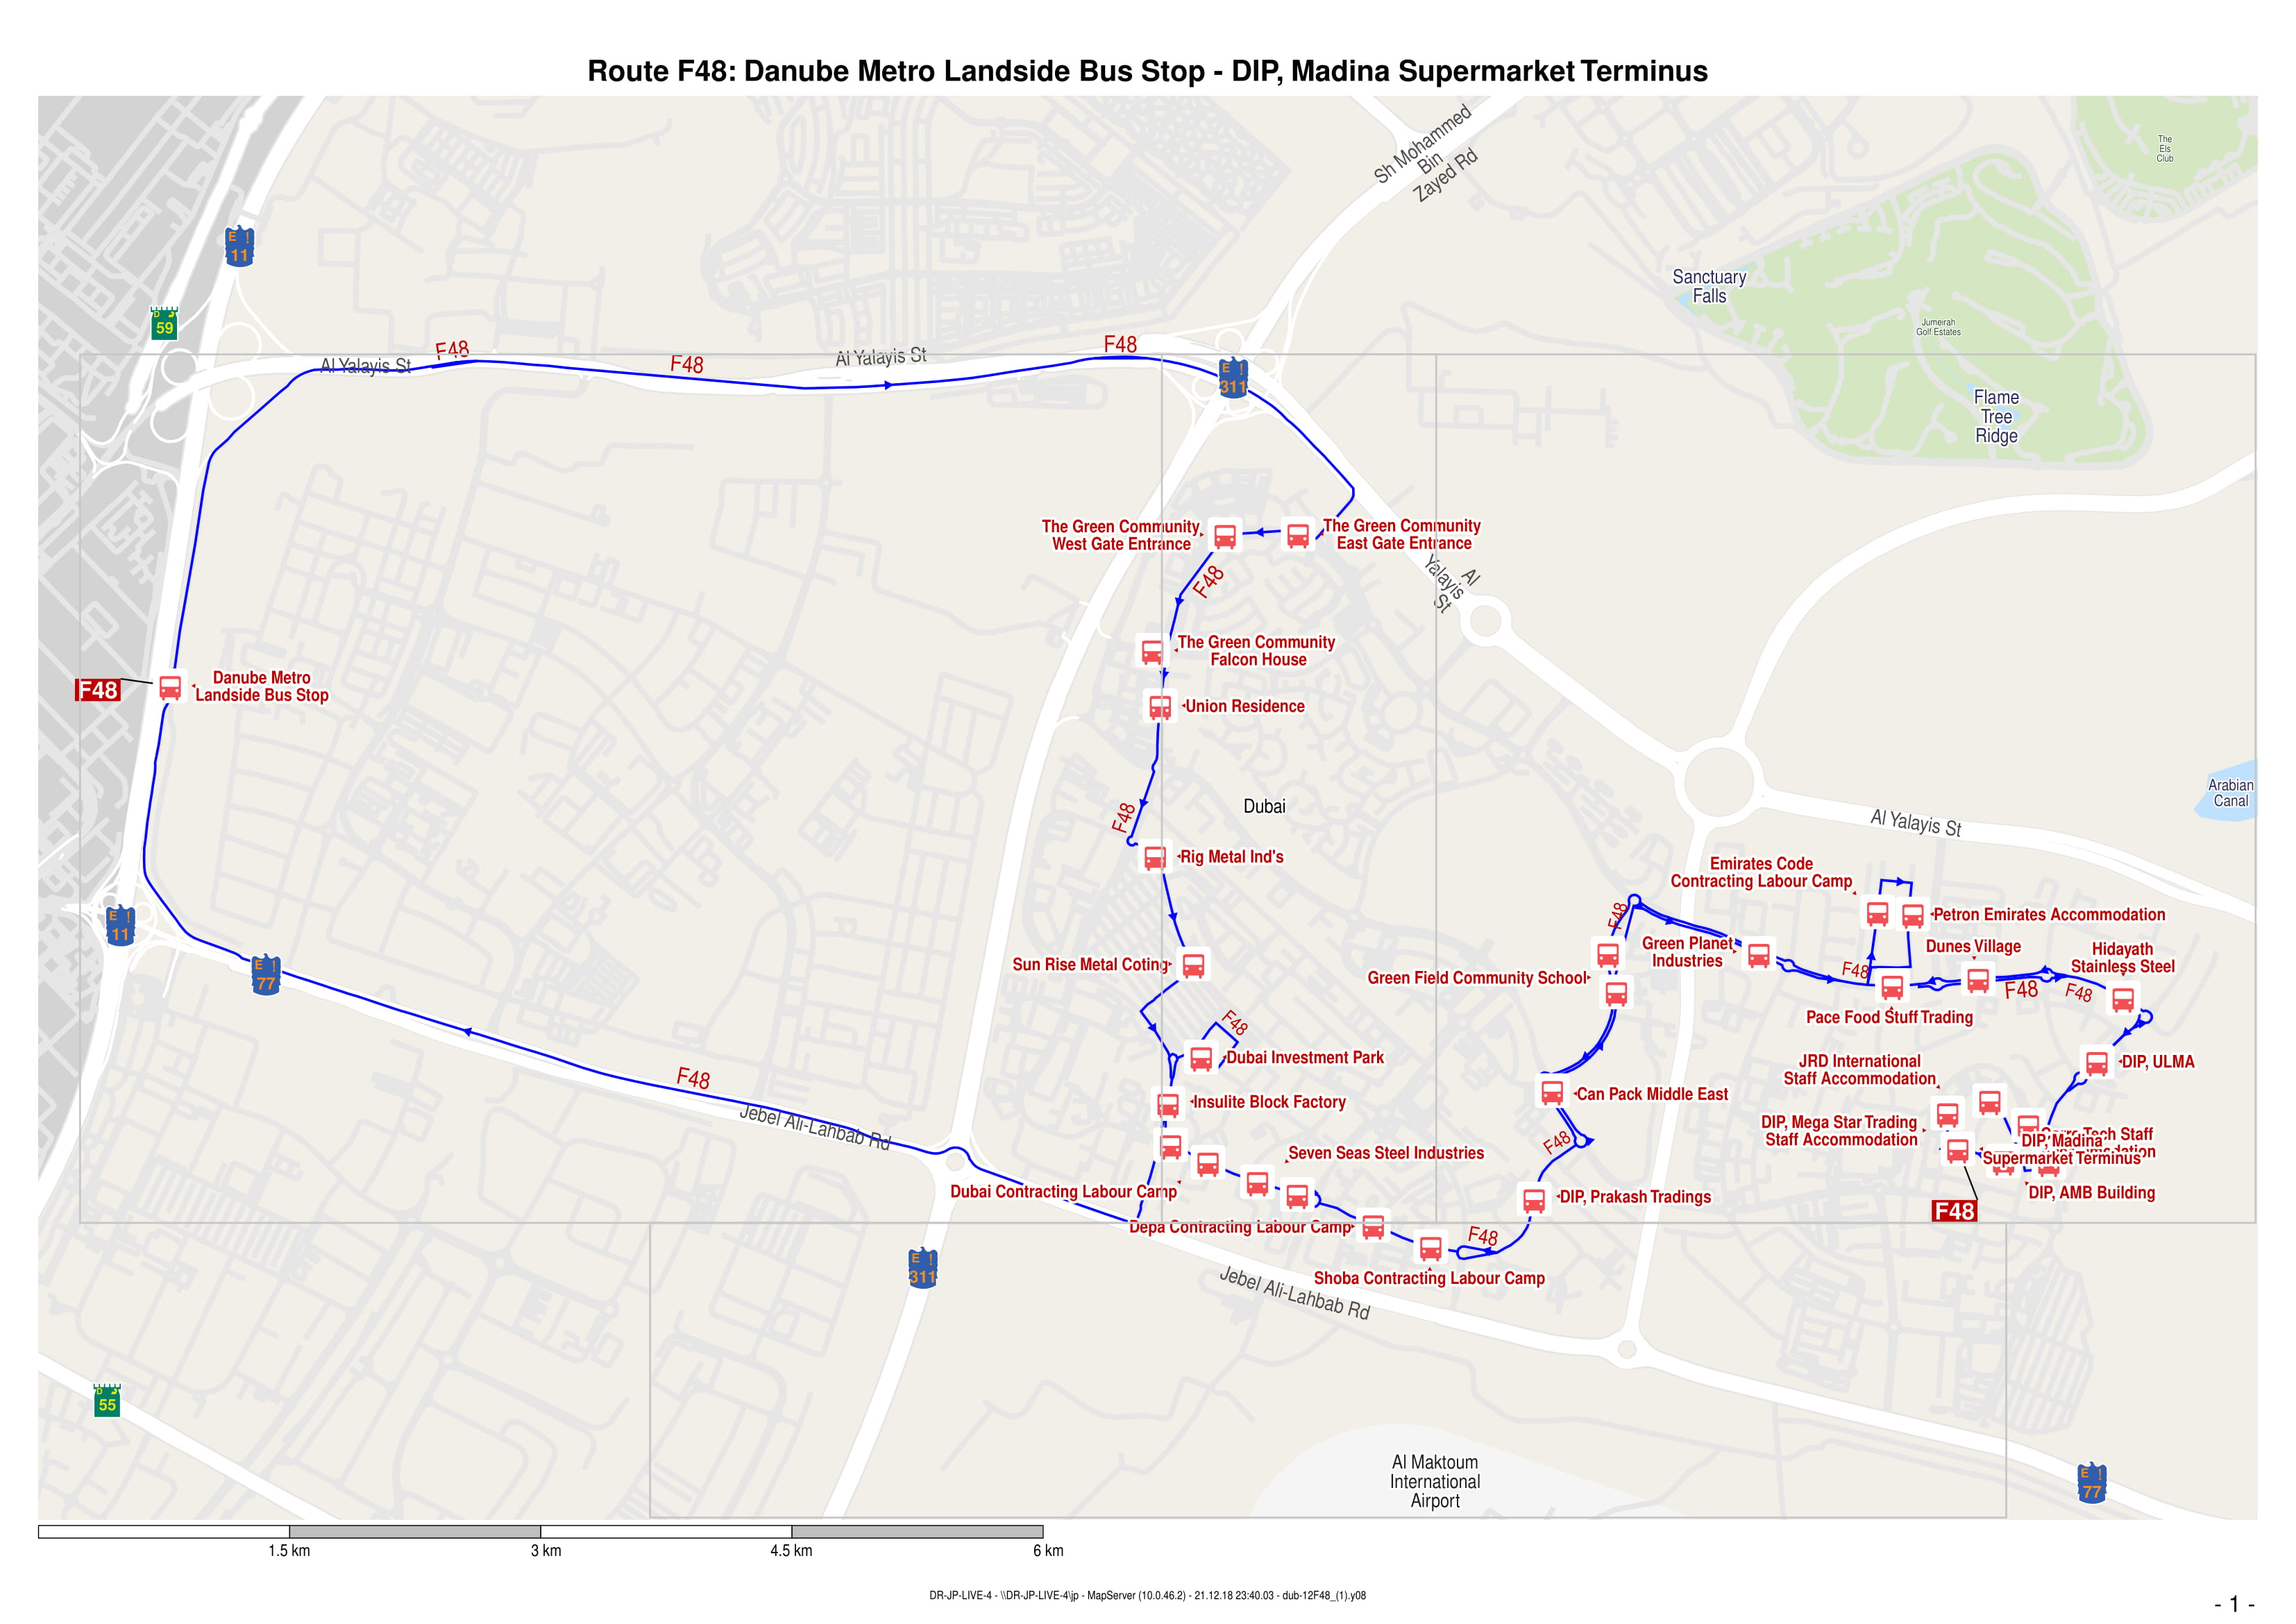 F48 Bus Route in Dubai - Time Schedule, Stops and Maps